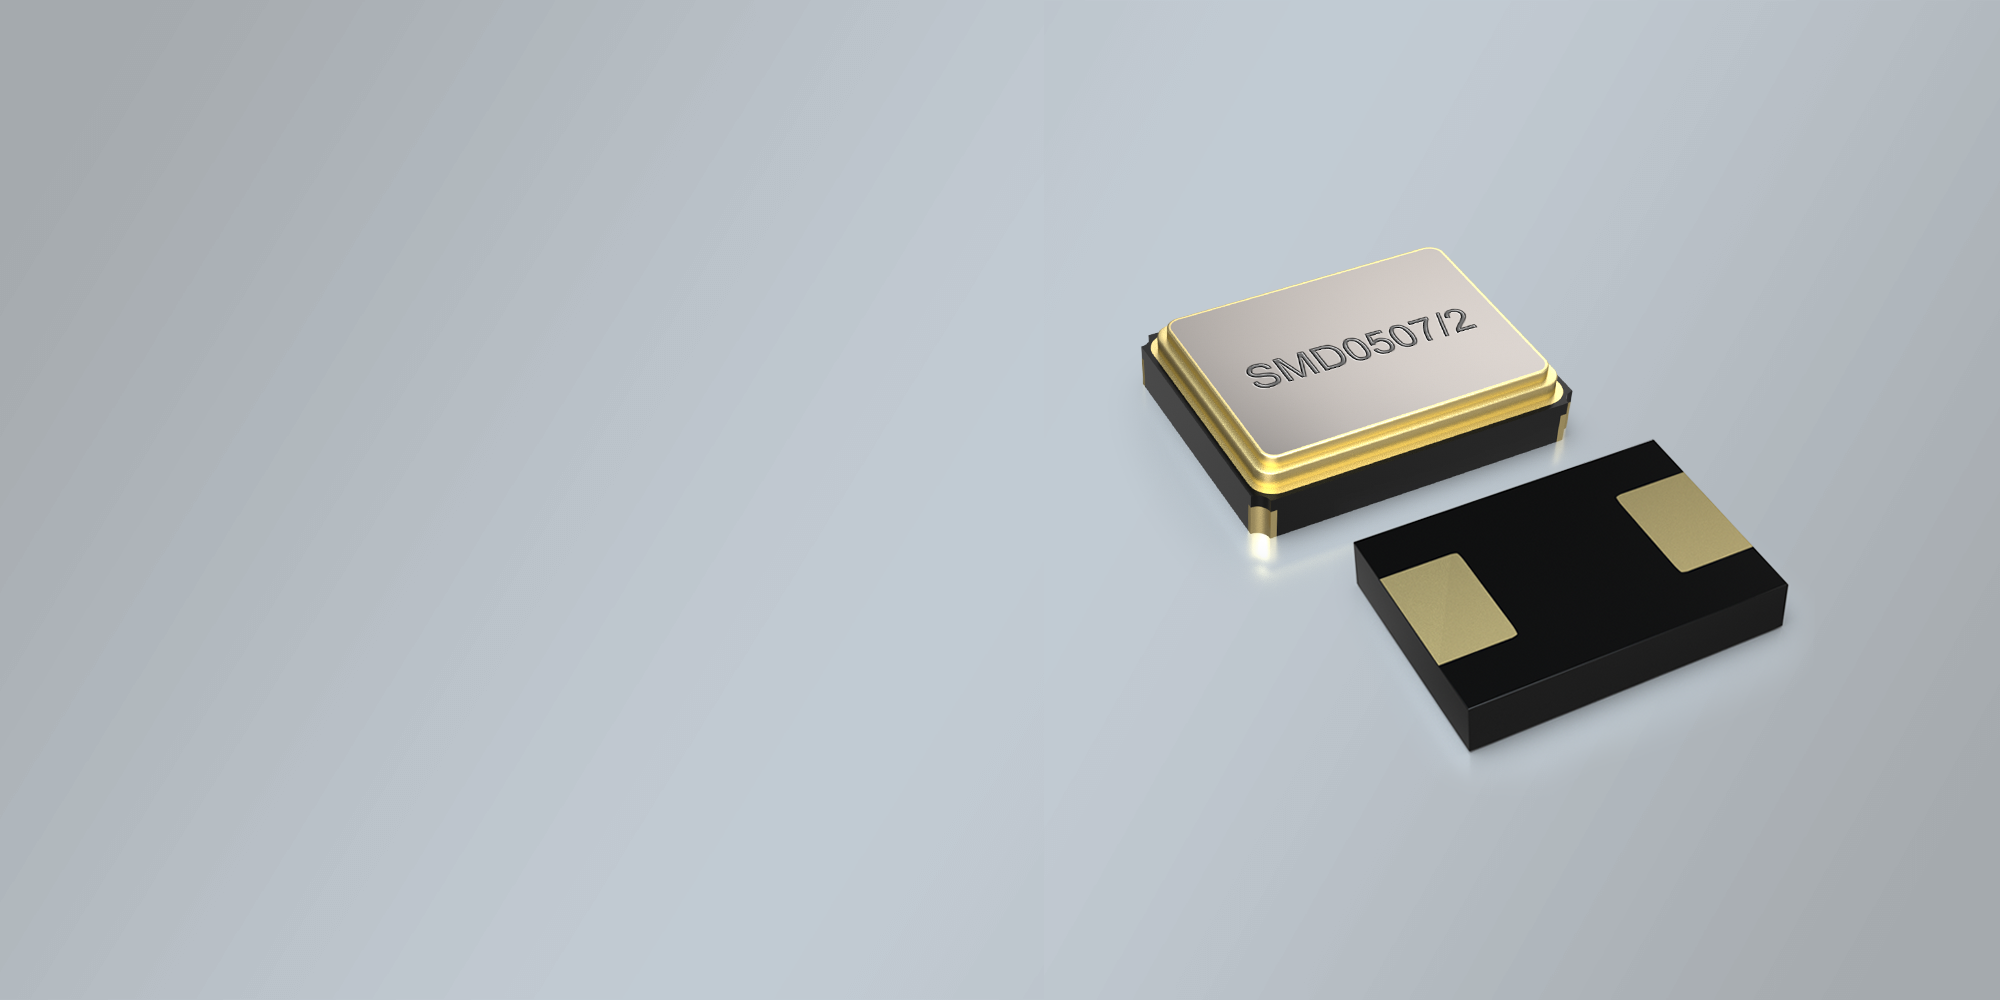 SMD QUARZ 7,0 x 5,0 mm 6.0 - 150.0 MHz